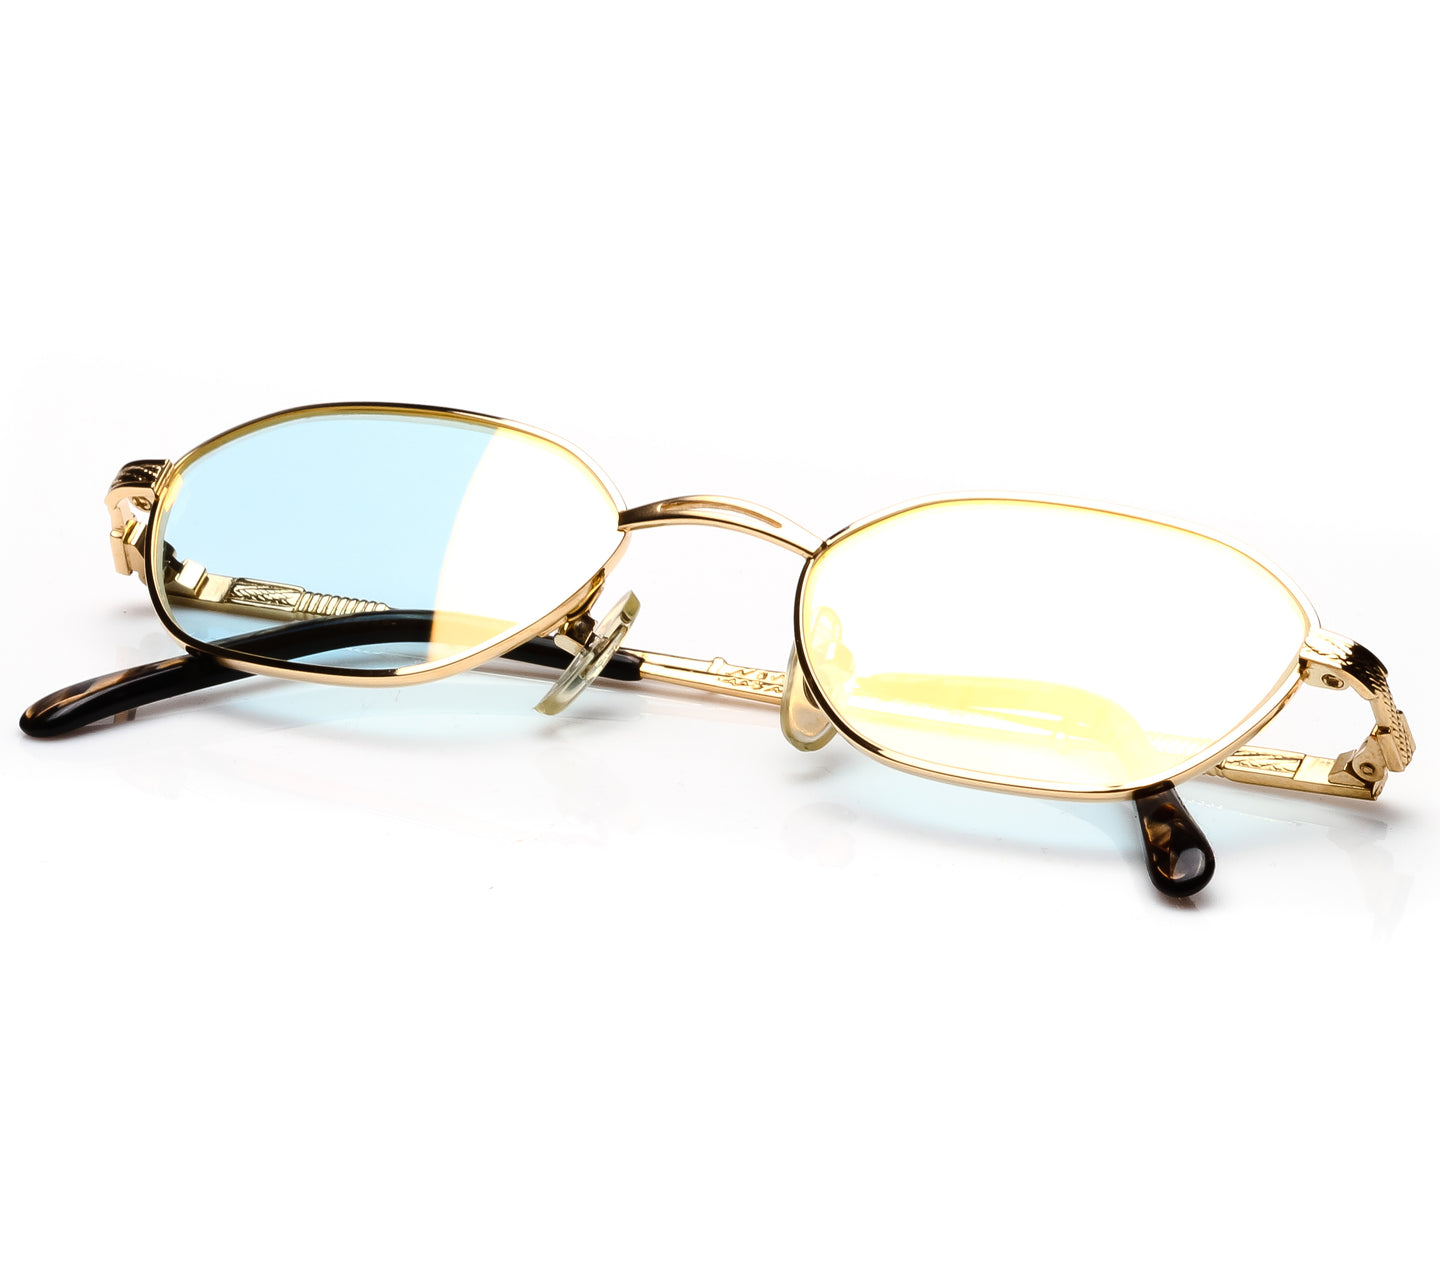 Paolo Gucci PG 7307 (Light Blue Flash Gold) Thumbnail, Paolo Gucci , glasses frames, eyeglasses online, eyeglass frames, mens glasses, womens glasses, buy glasses online, designer eyeglasses, vintage sunglasses, retro sunglasses, vintage glasses, sunglass, eyeglass, glasses, lens, vintage frames company, vf